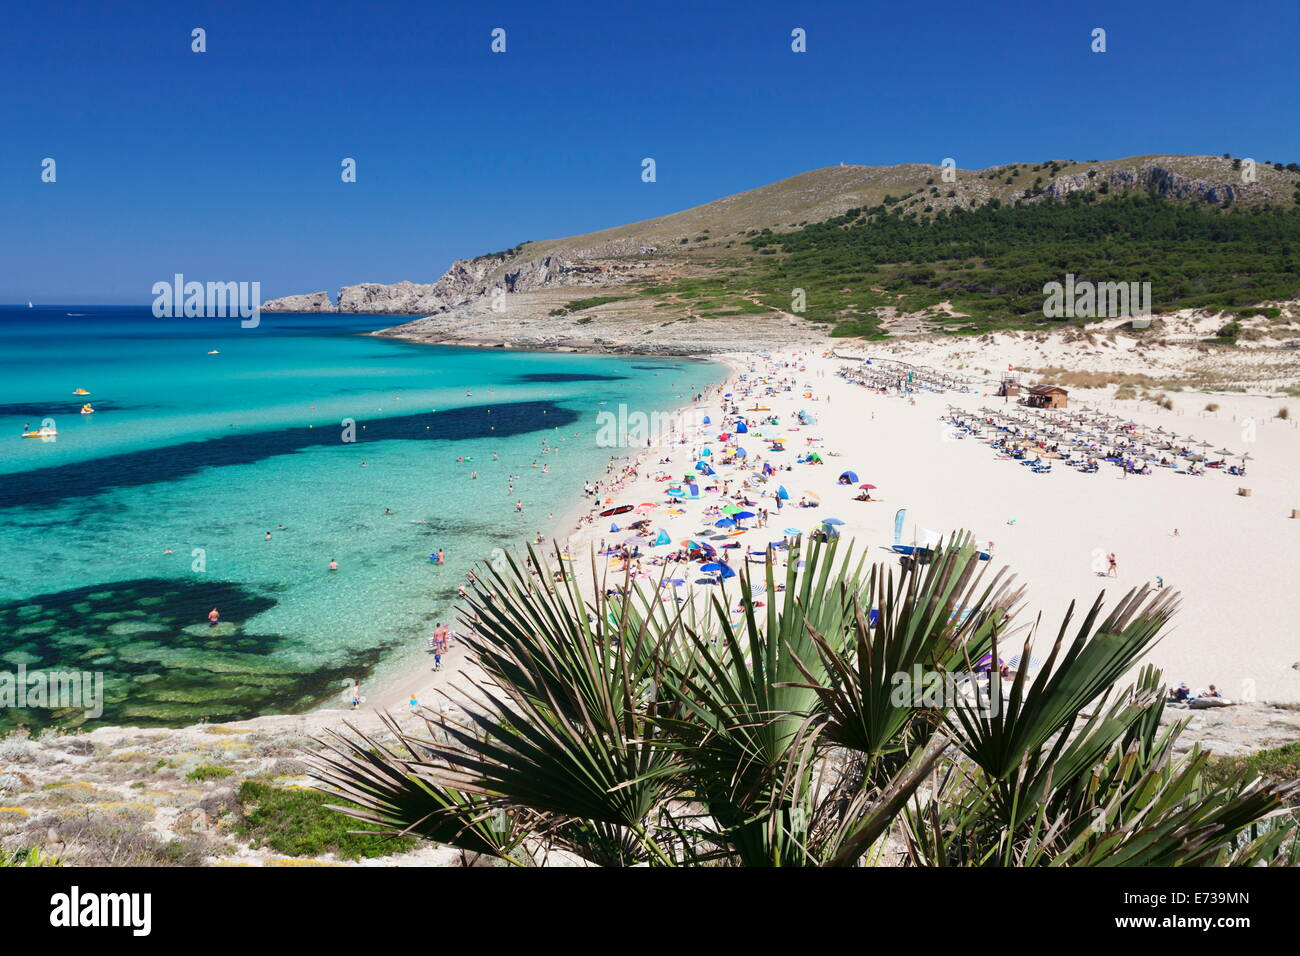 Beach and bay cala mesquita capdepera majorca mallorca balearic stock photo 73217557 alamy - Mallorca islas baleares ...